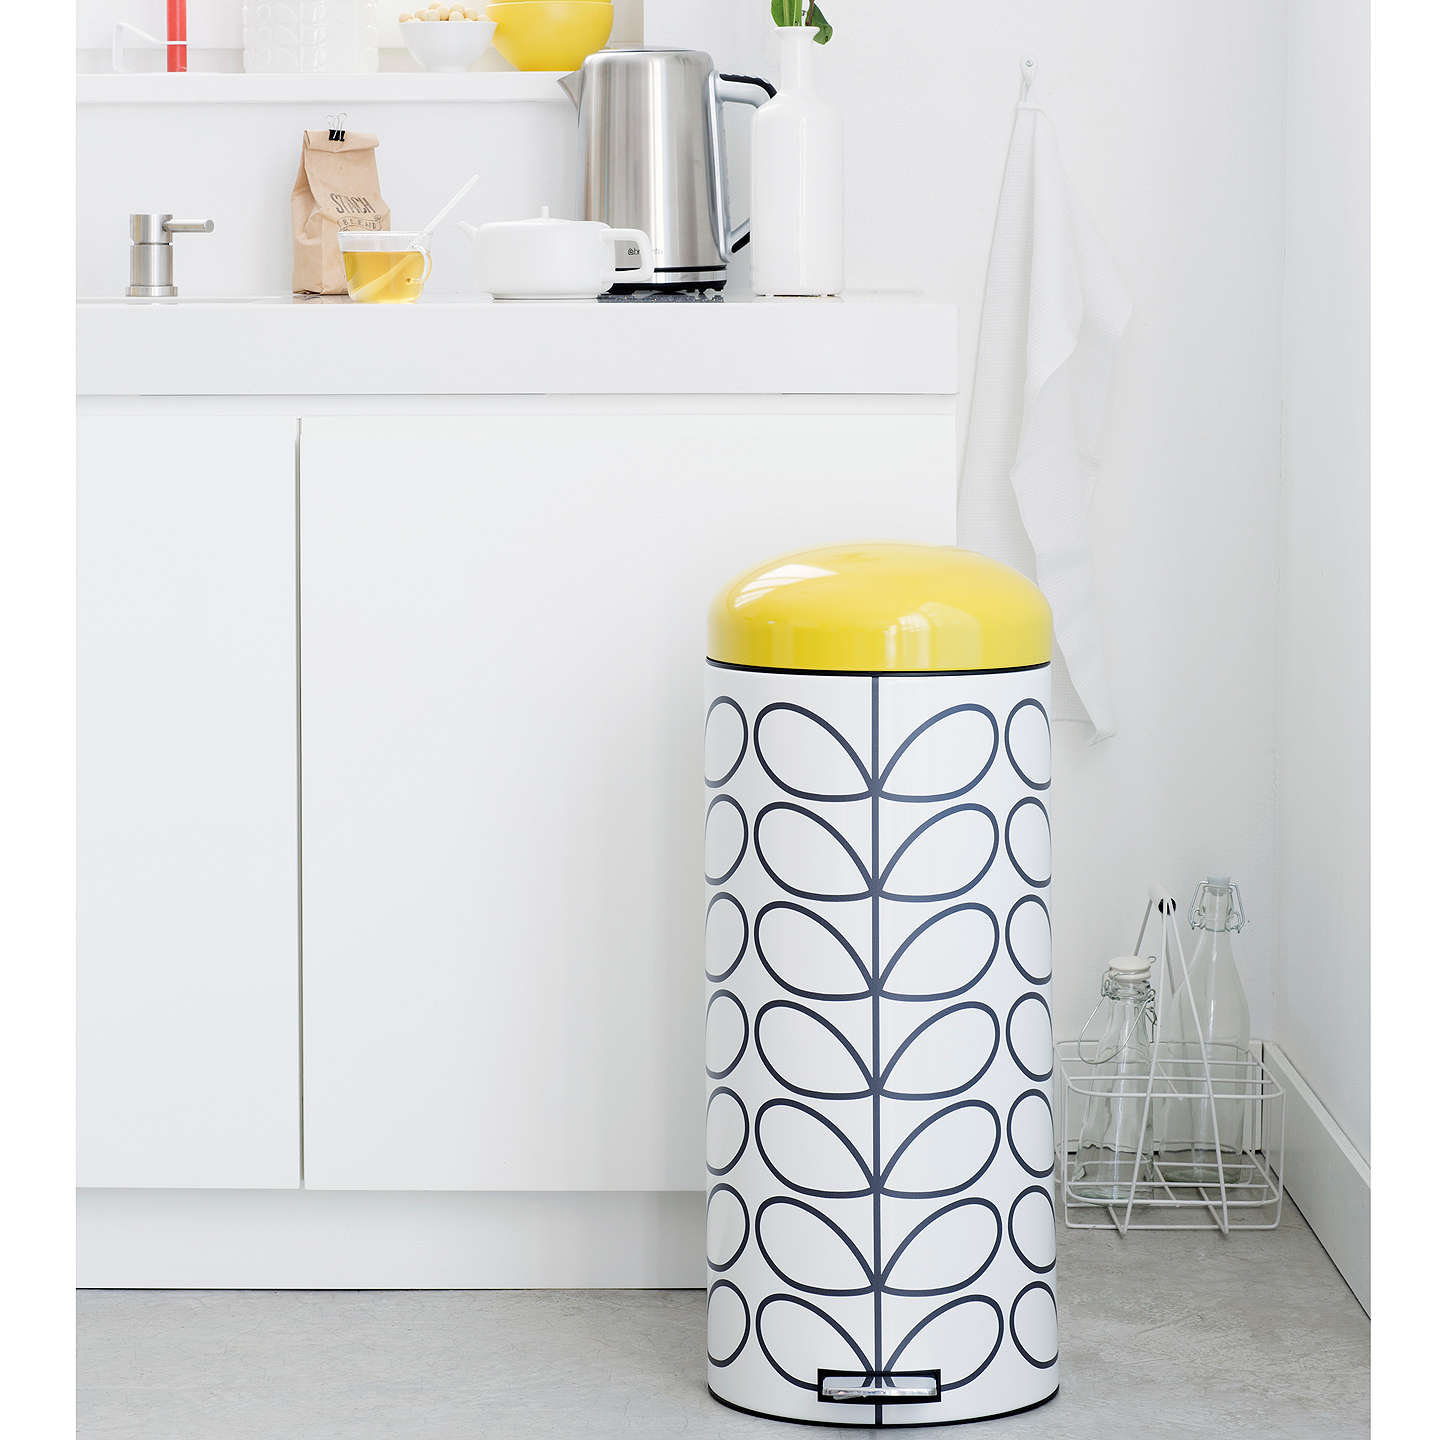 BuyBrabantia Orla Kiely Retro Bin, Cream, 12L Online at johnlewis.com